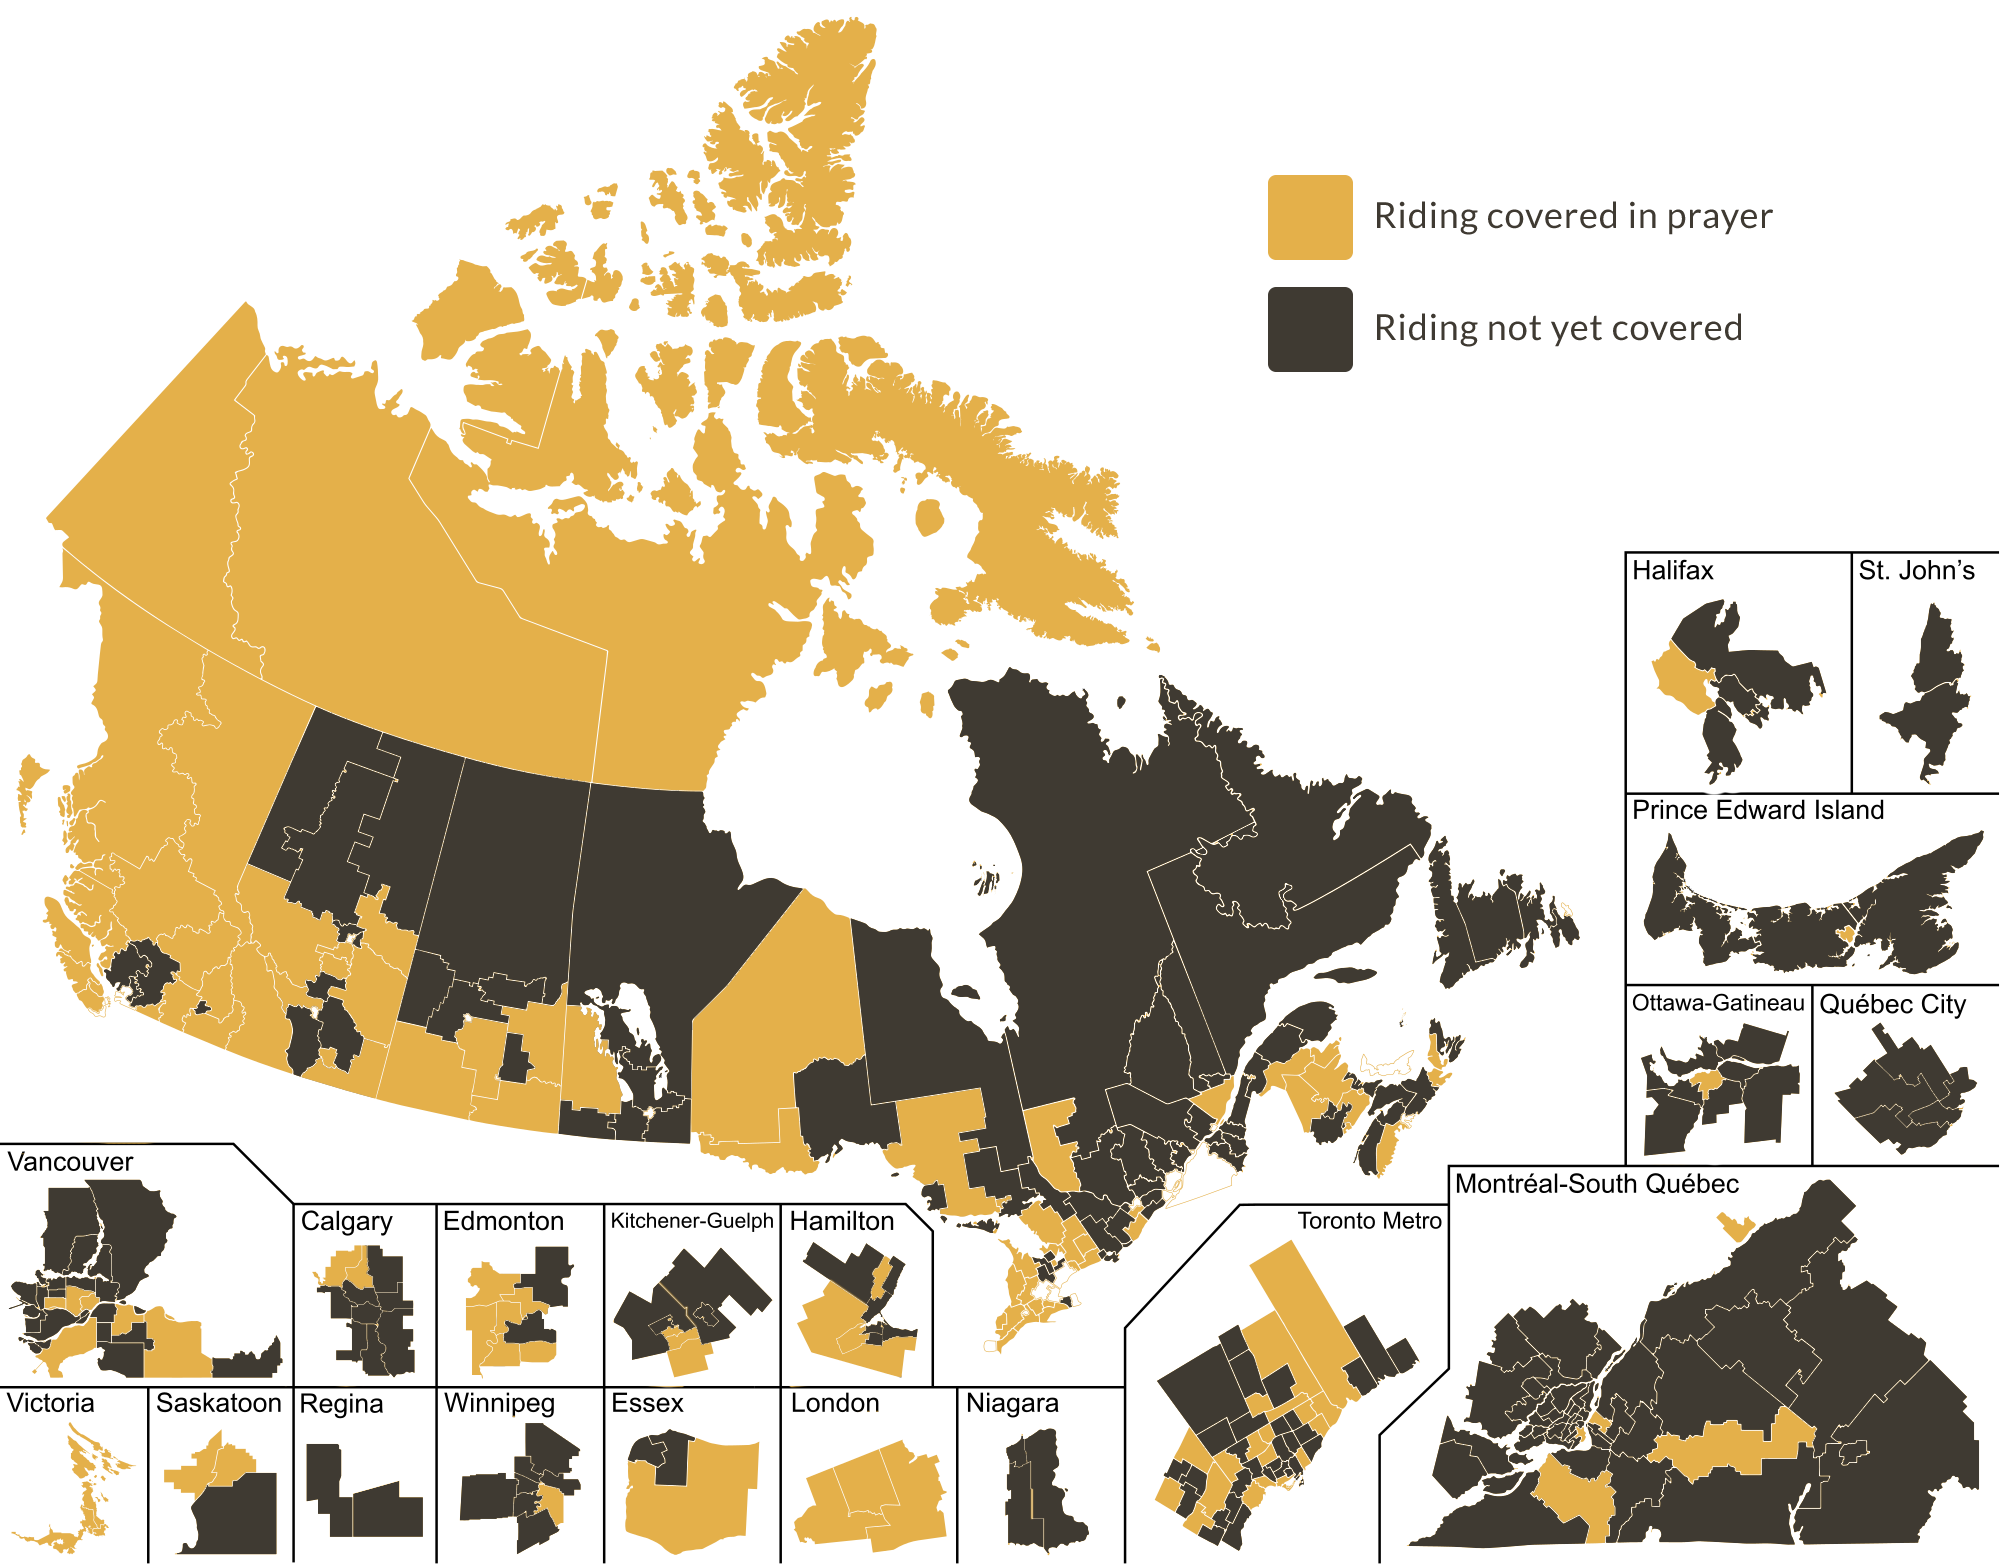 Canada ridings map